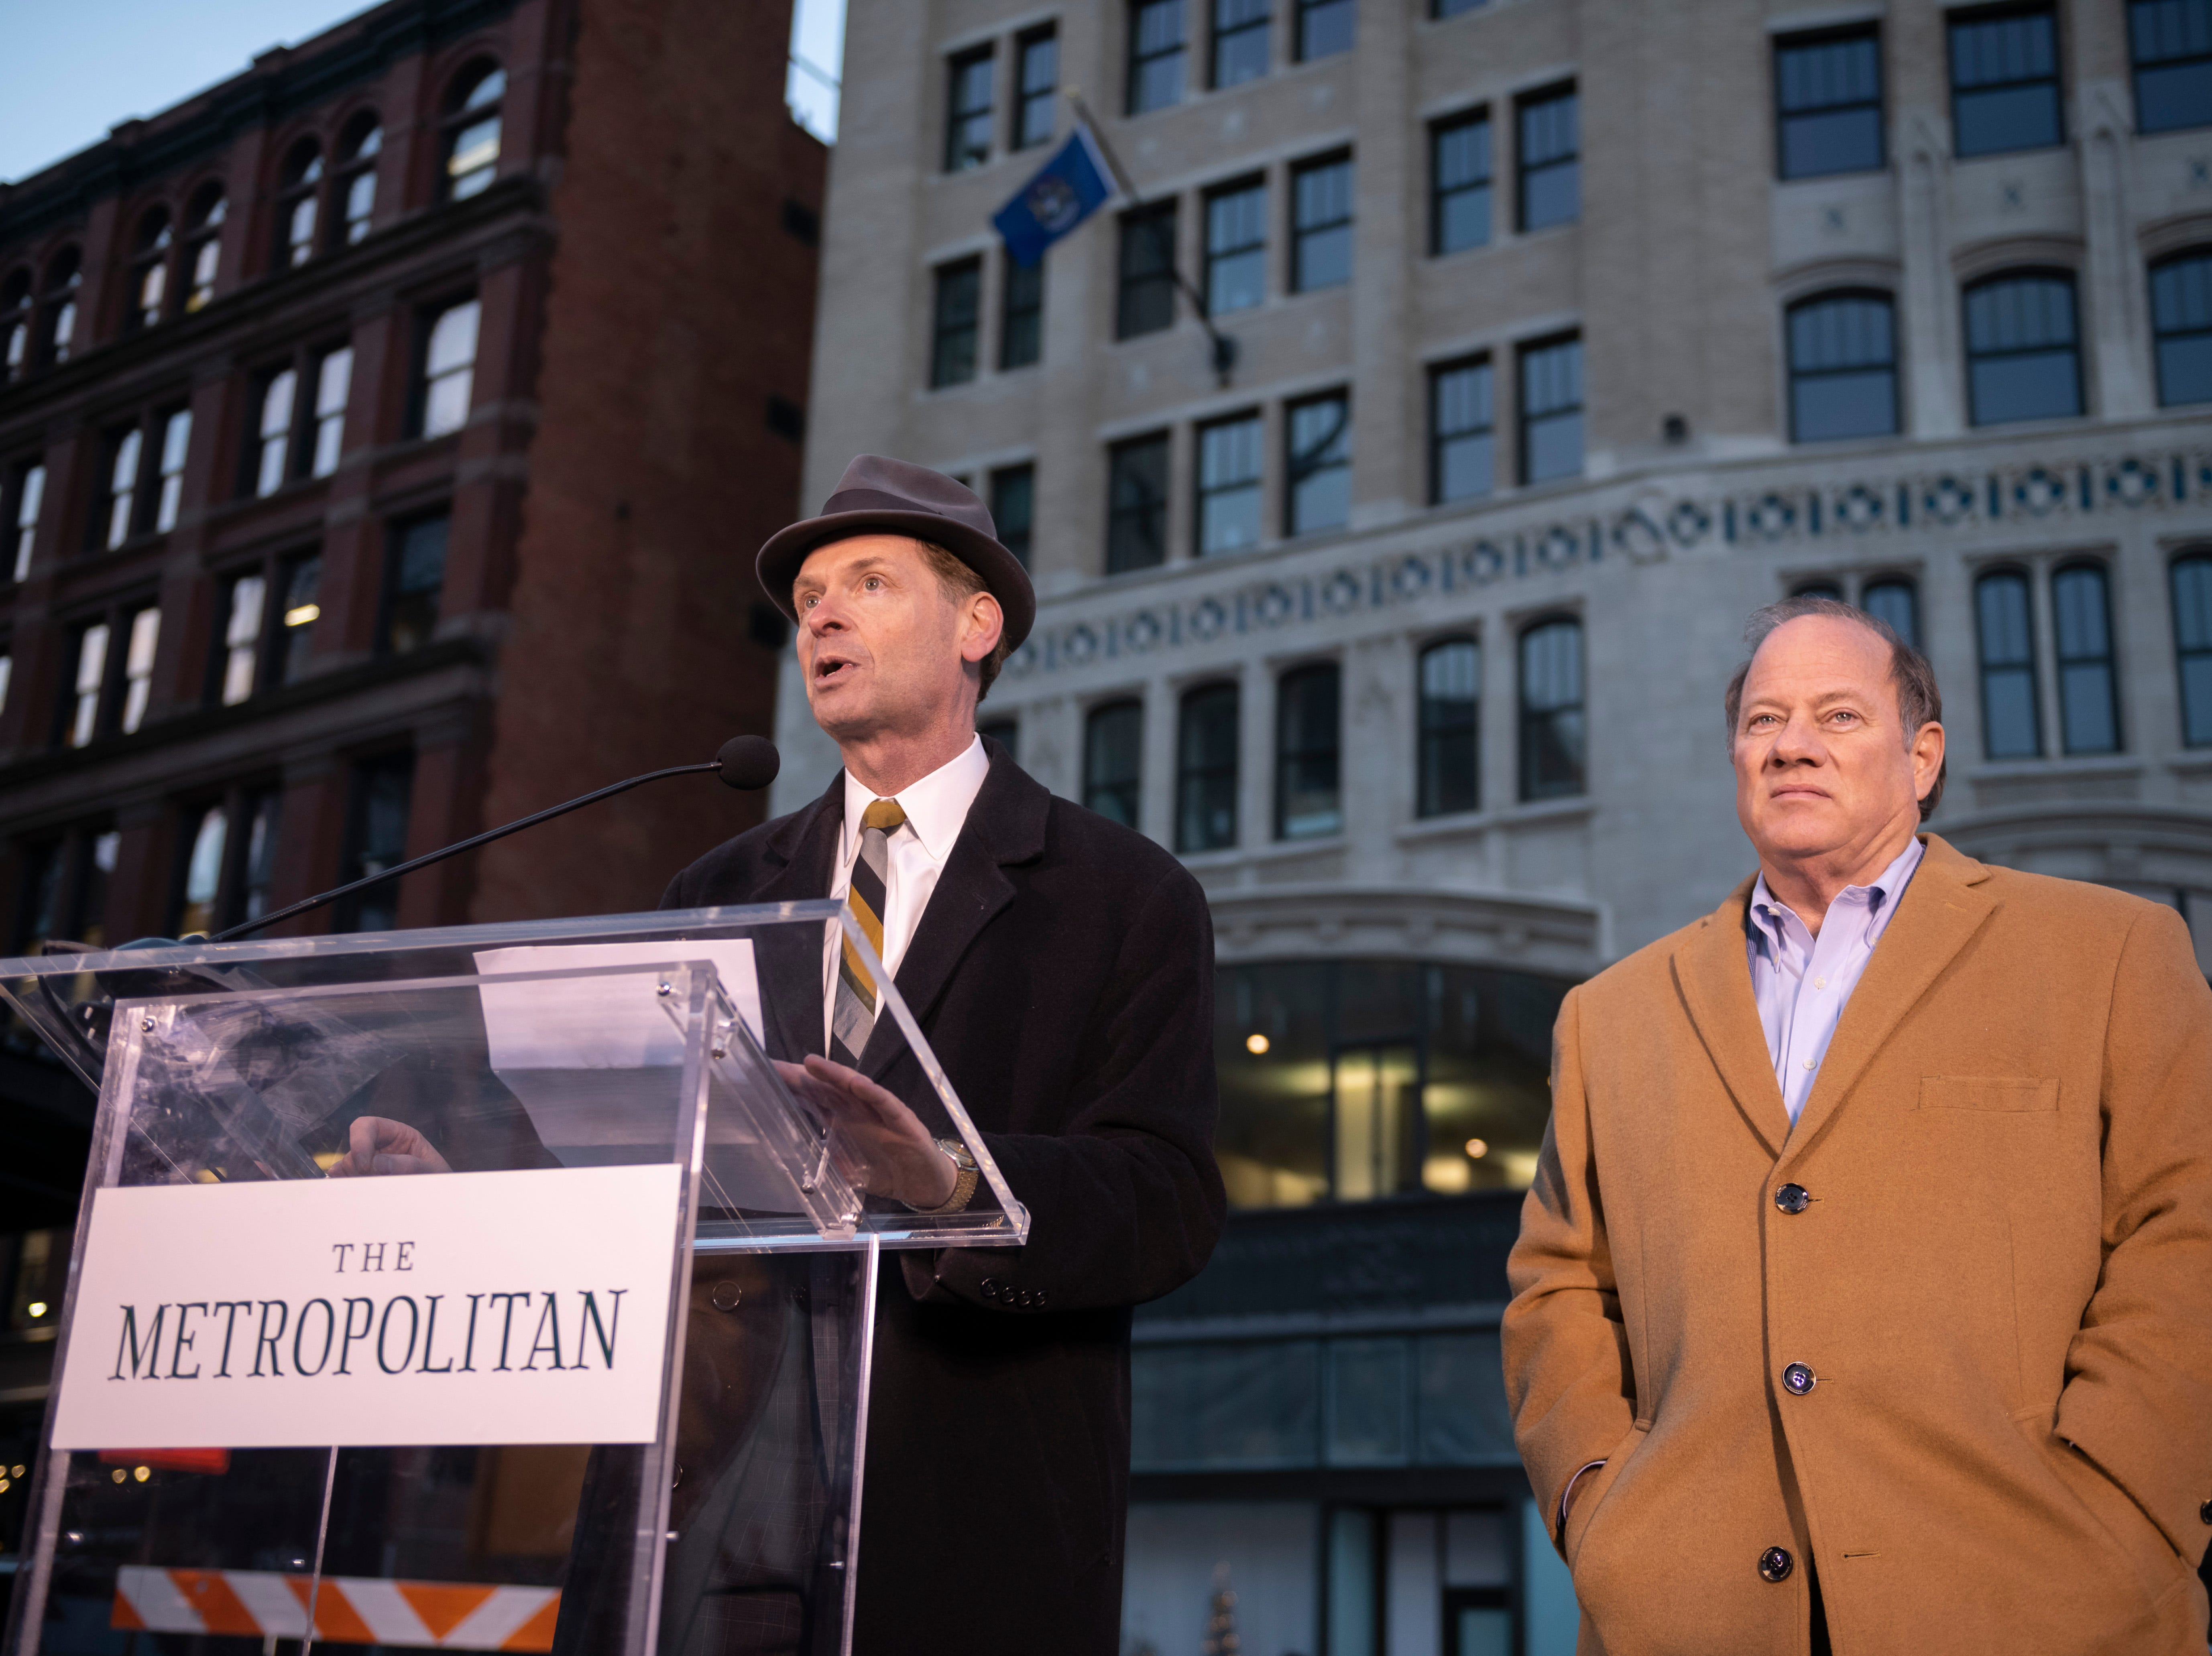 David Di Rita, principal of the Roxbury Group, left, and Detroit Mayor Mike Duggan stand on stage during a public dedication celebration of the Metropolitan building.